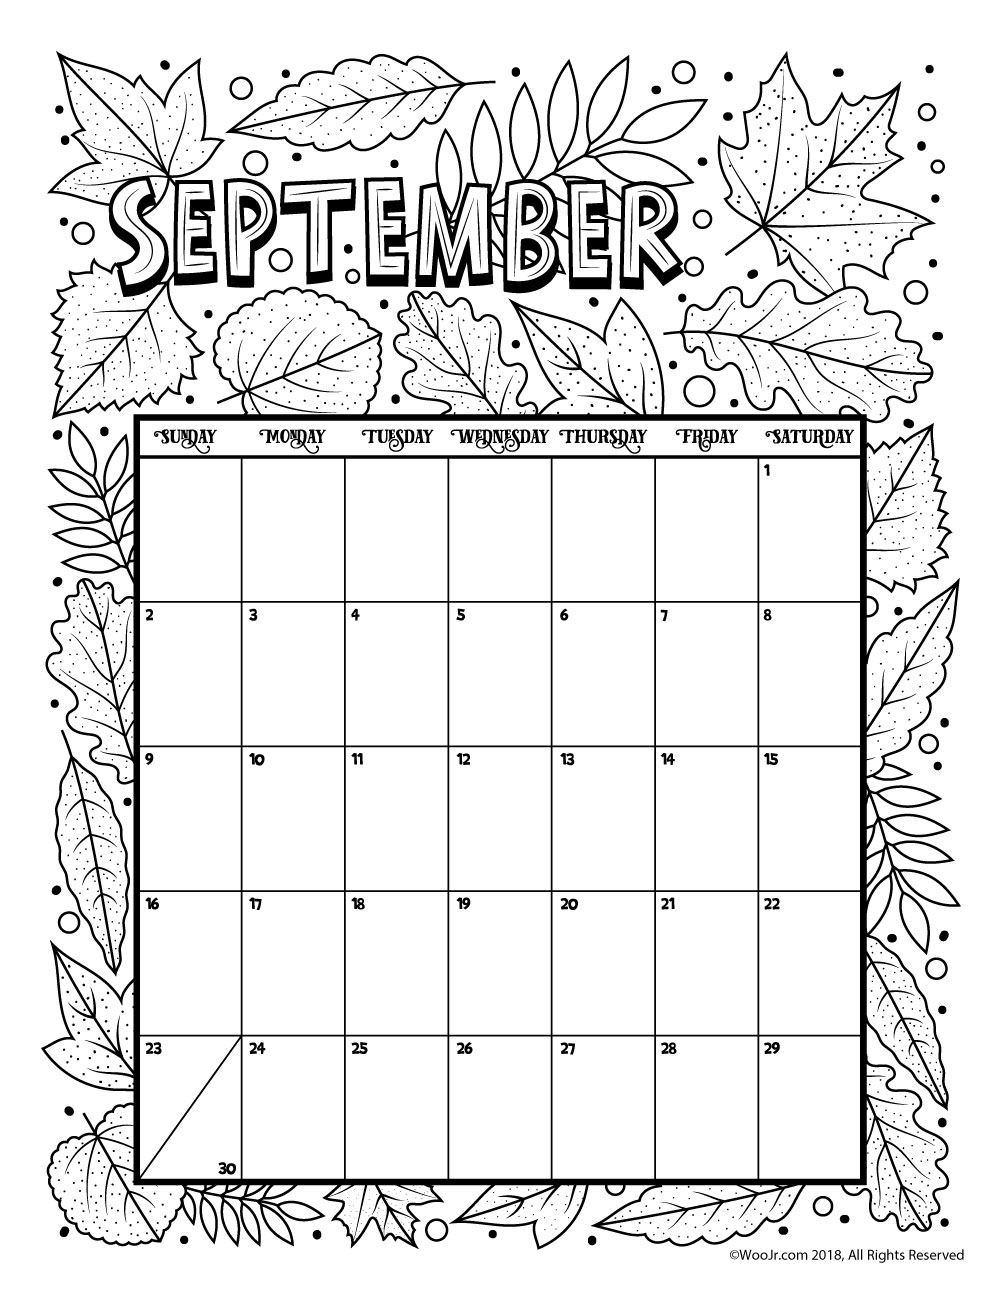 september 2018 coloring calendar page woo jr kids activities